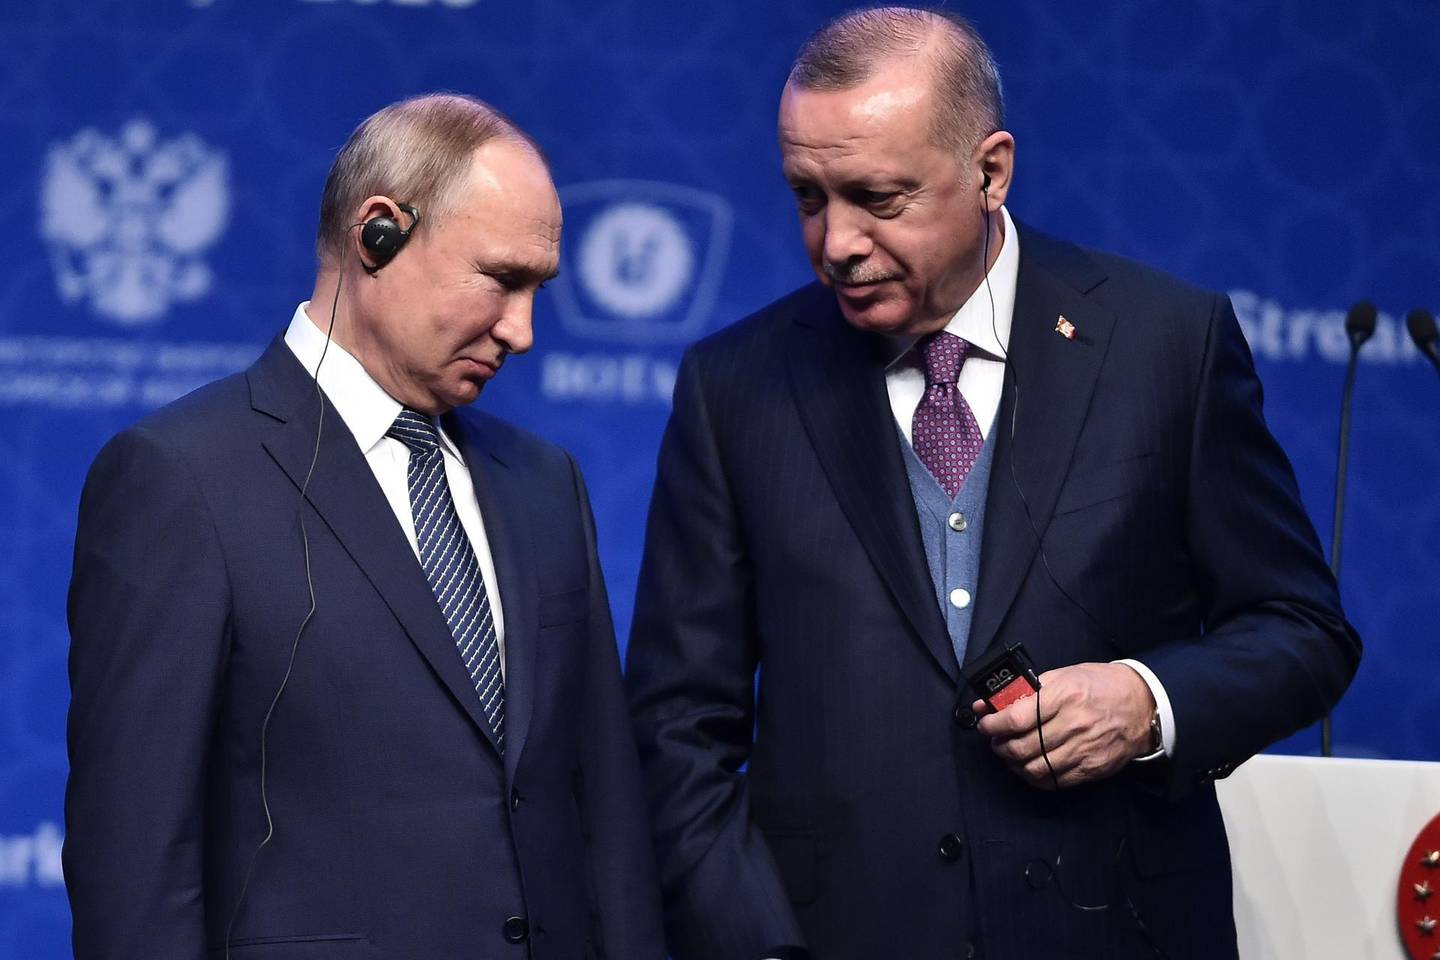 """Russian President Vladimir Putin (L) and Turkish President Recep Tayyip Erdogan (R) attend the inauguration ceremony of a new gas pipeline """"TurkStream"""" on January 8, 2020, in Istanbul. Turkish President Recep Tayyip Erdogan is hosting Russian counterpart Vladimir Putin to inaugurate a new gas pipeline, with tensions in Libya and Syria also on the agenda.The TurkStream project, which was temporarily halted during a frosty patch in Russia-Turkey relations, includes two parallel pipelines of more than 900 kilometres (550 miles). / AFP / Ozan KOSE"""